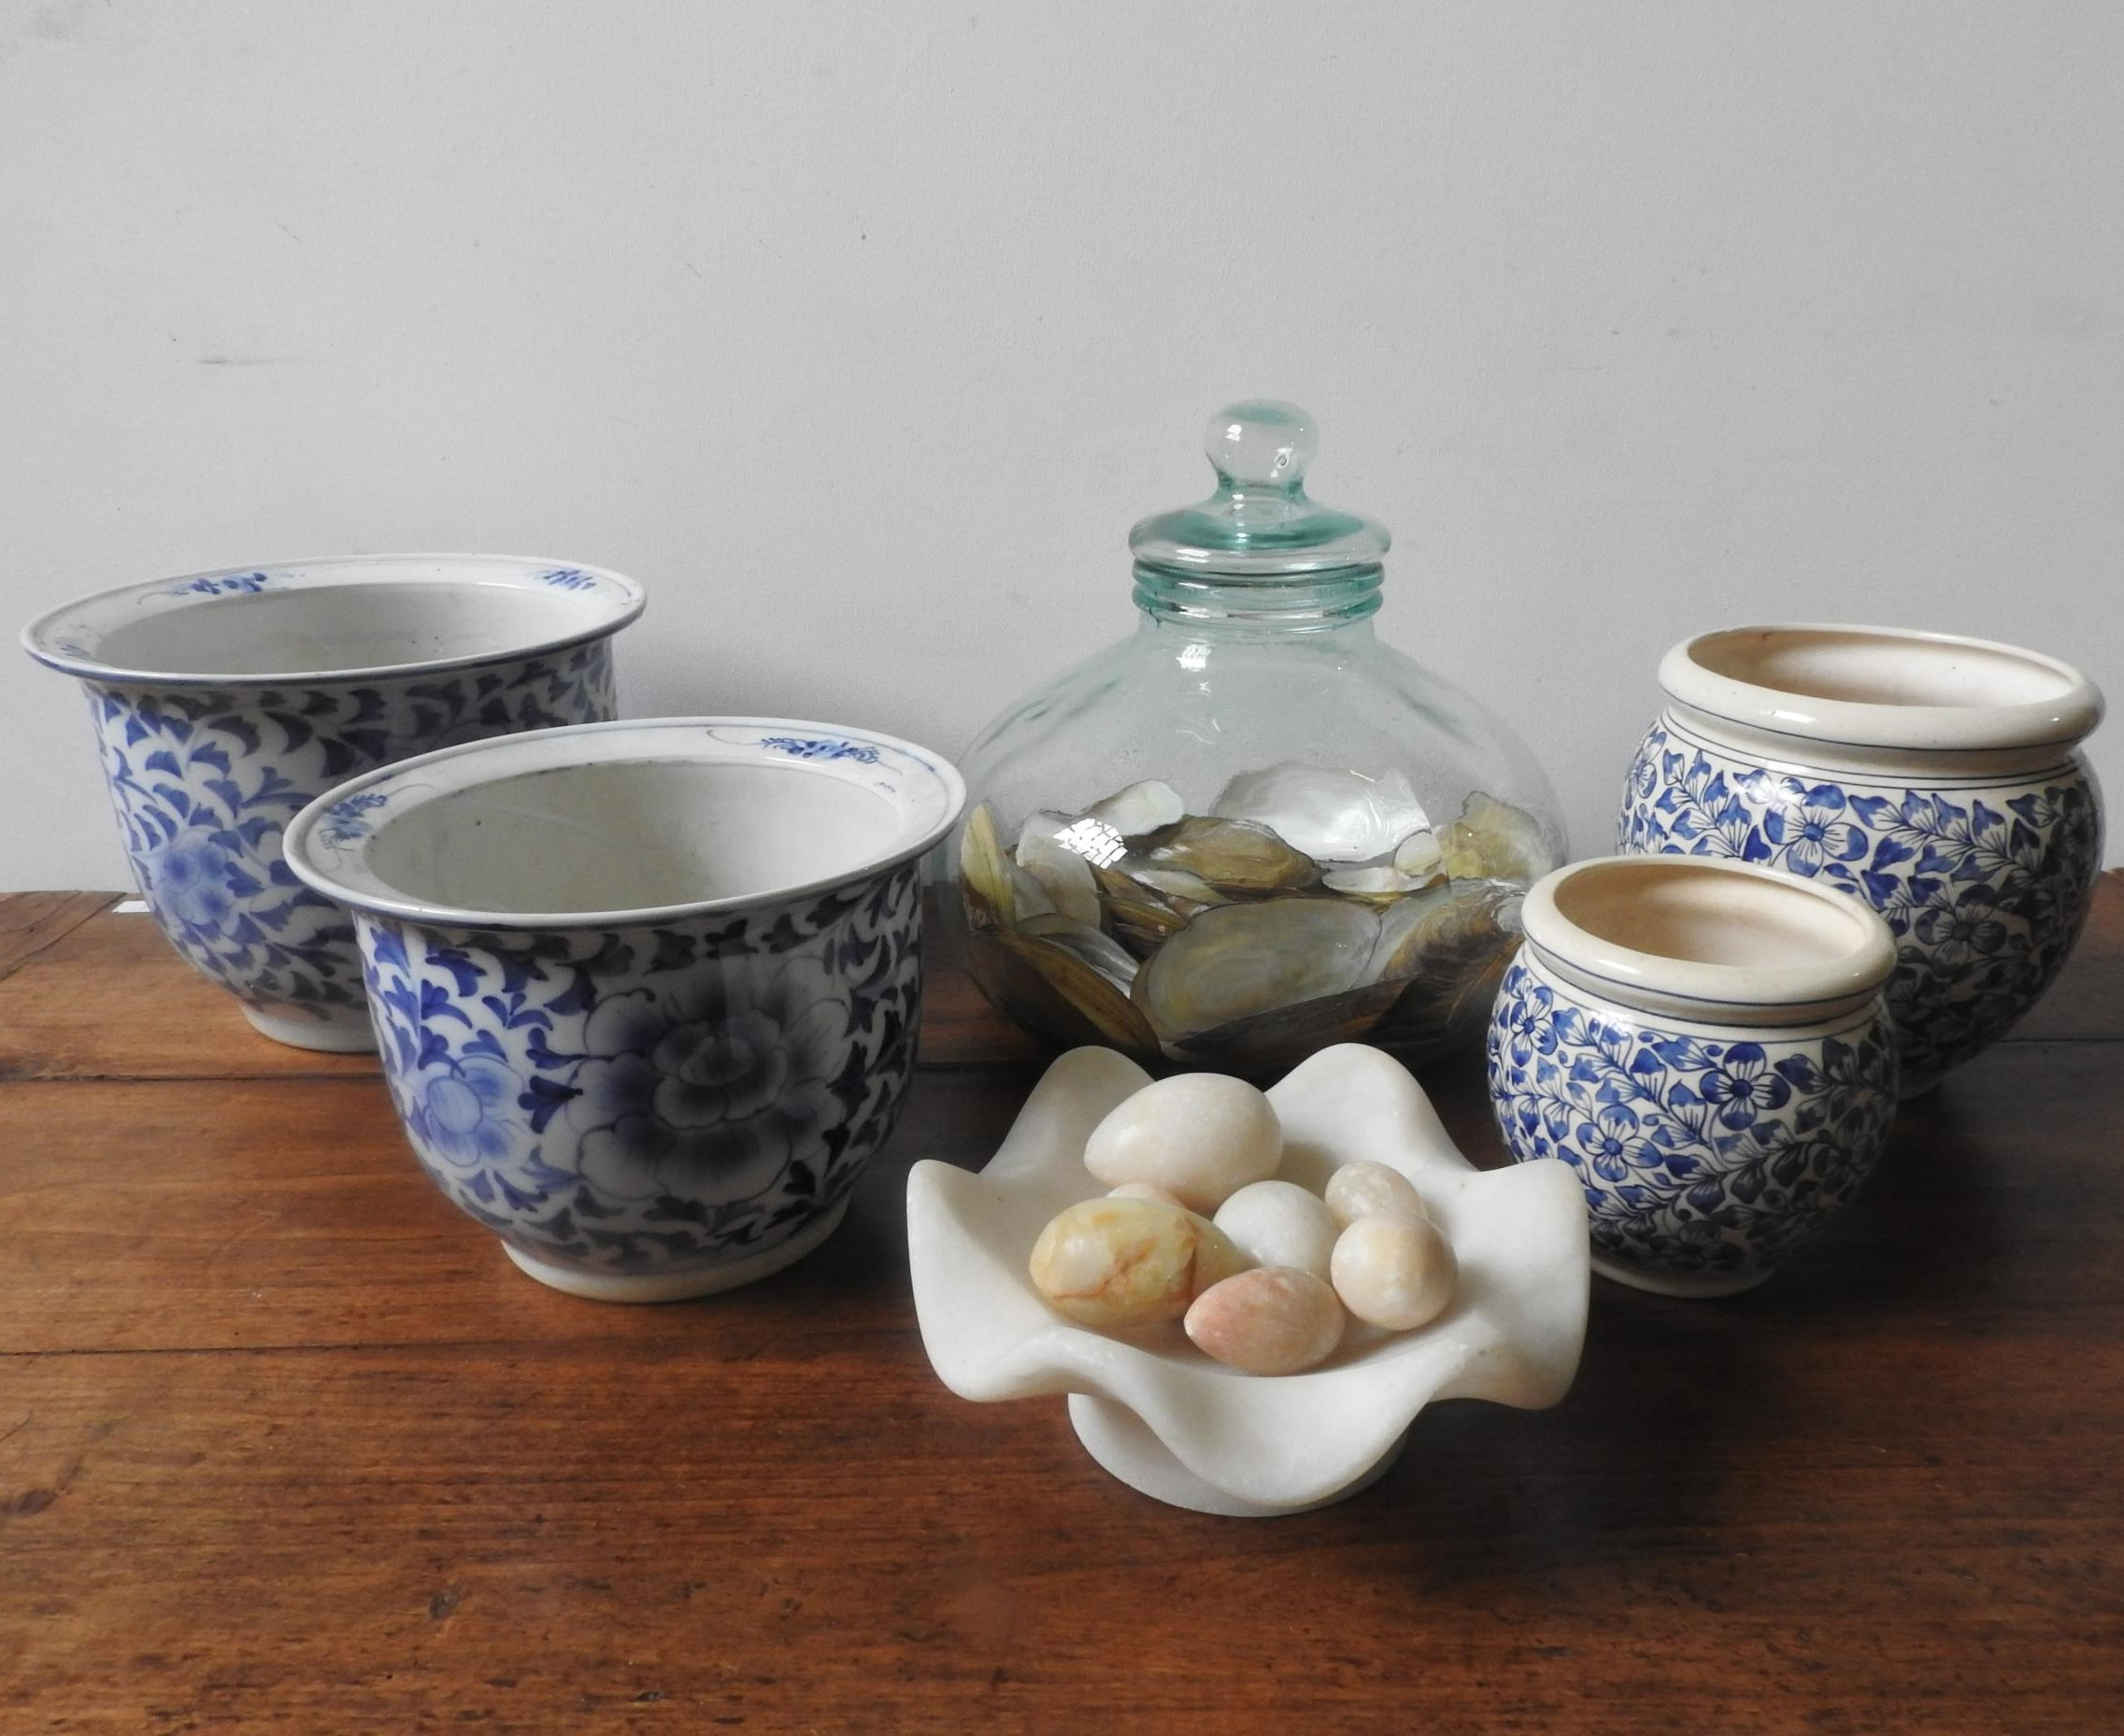 FOUR BLUE AND WHITE GLAZED JARDINIERES, ALABASTER BOWL AND EGG ORNAMENTS AND A LARGE GLASS JAR